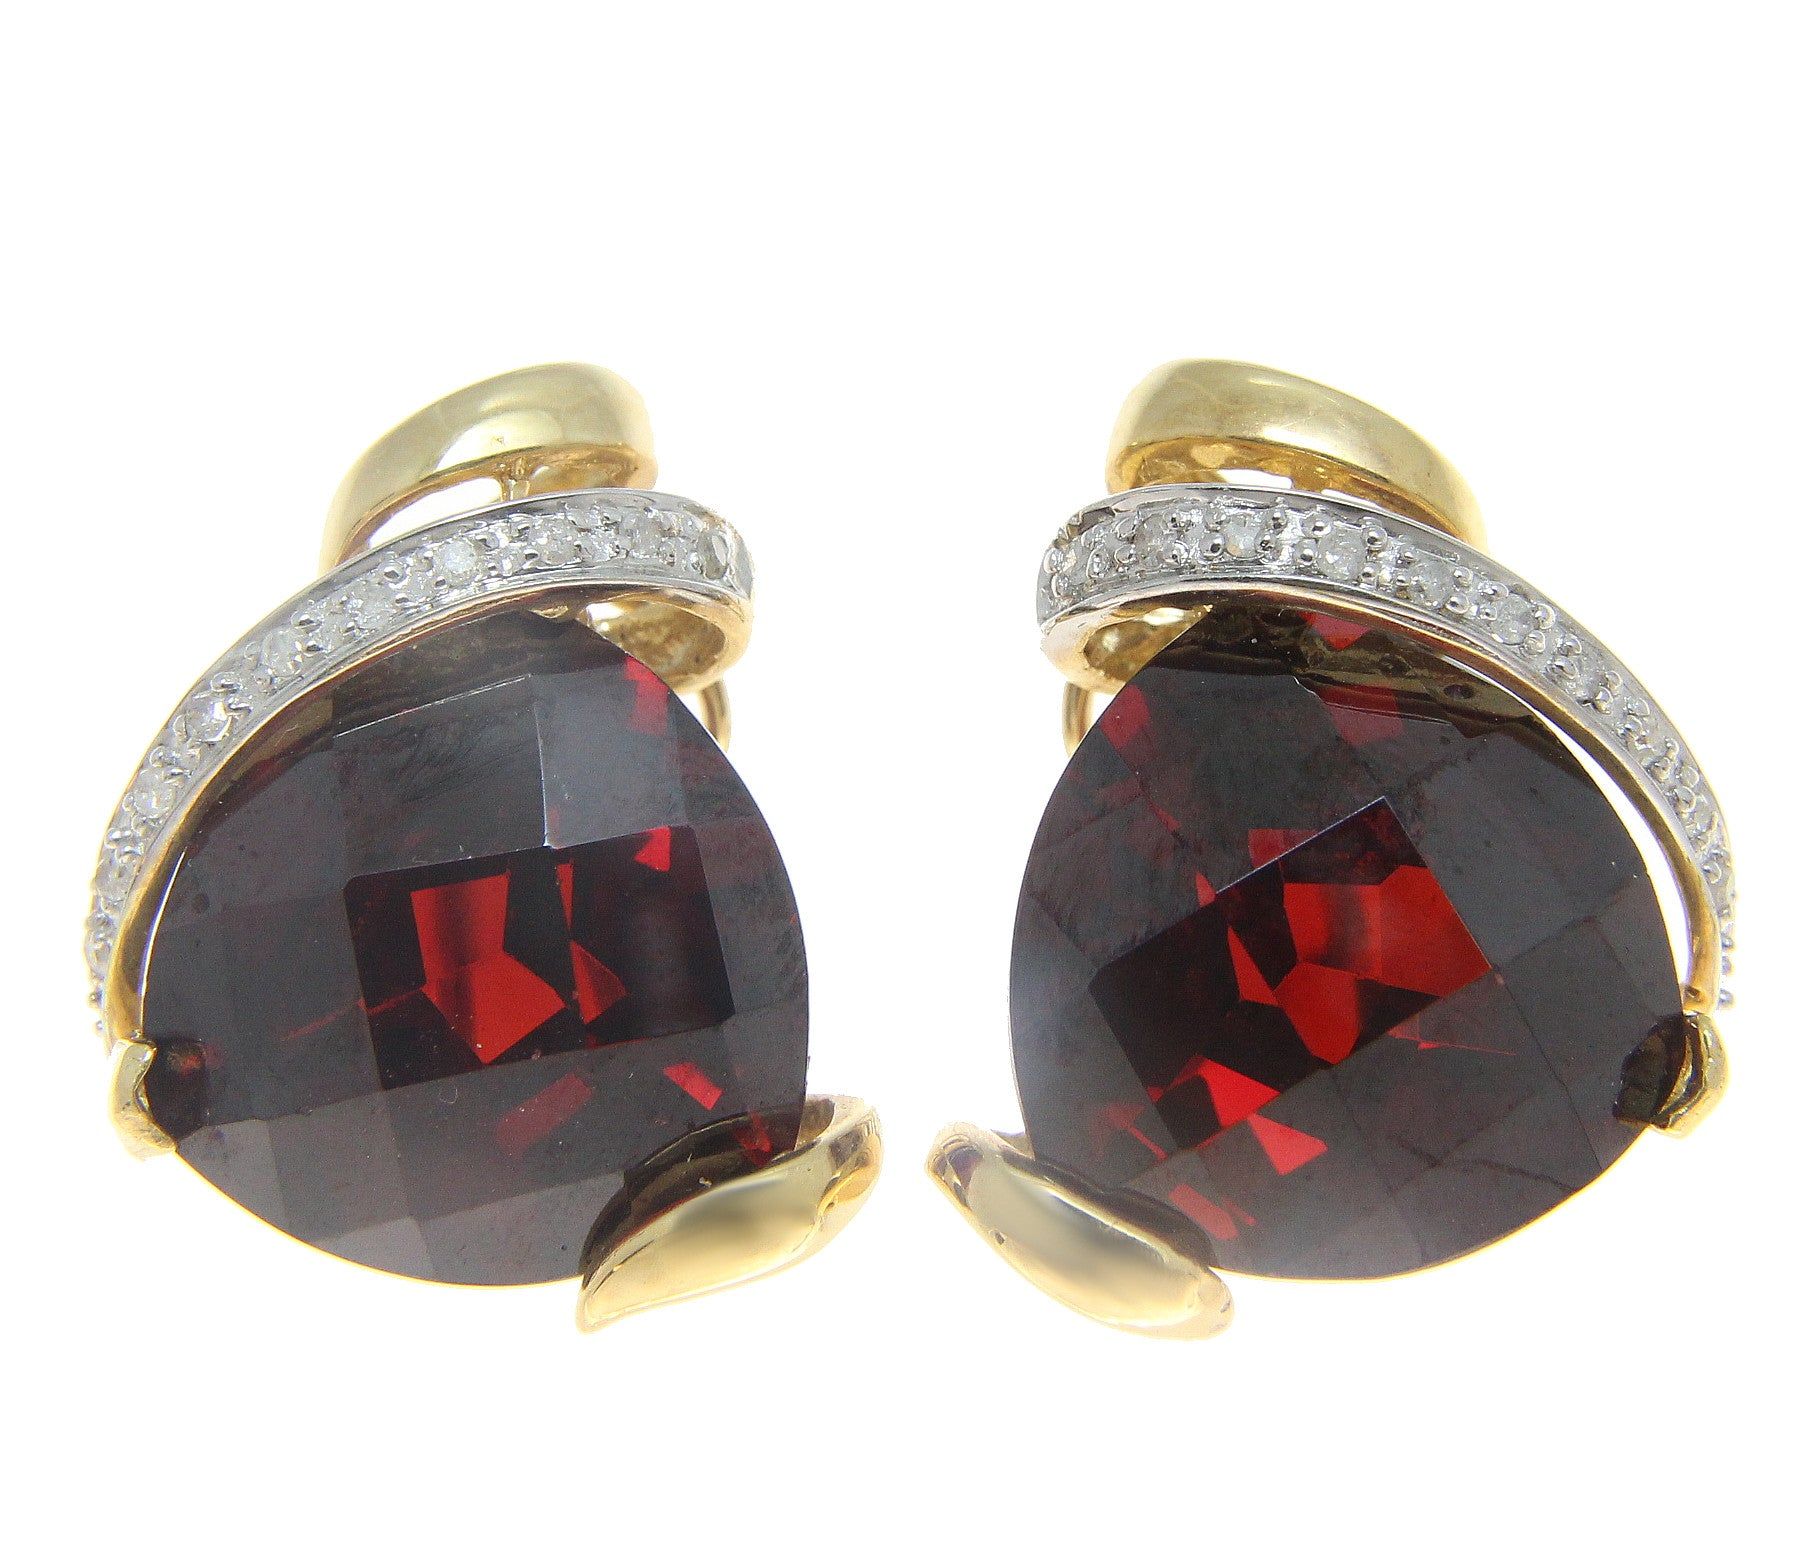 20 50CT TRILLION FACETED CHECKER GARNET DIAMOND EARRINGS OMEGA 14K